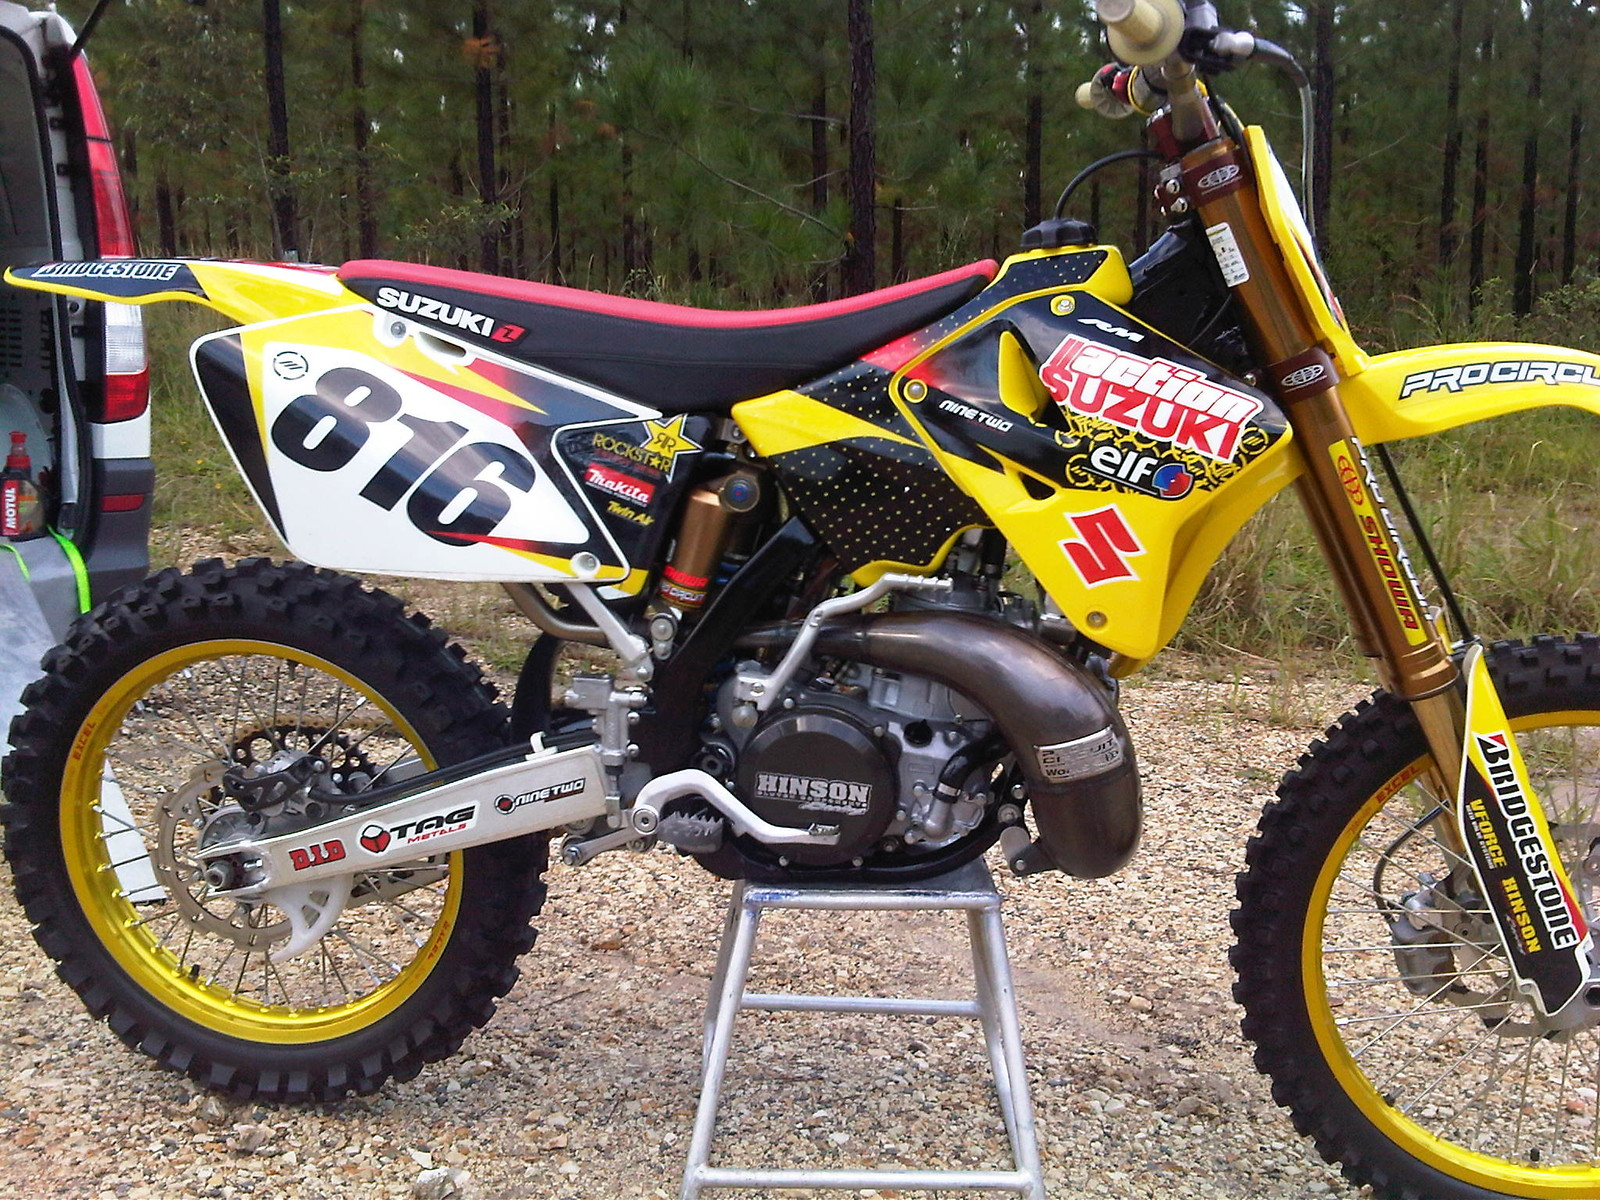 My PC RM250 is done   Moto Related   Motocross Forums Message 1600x1200